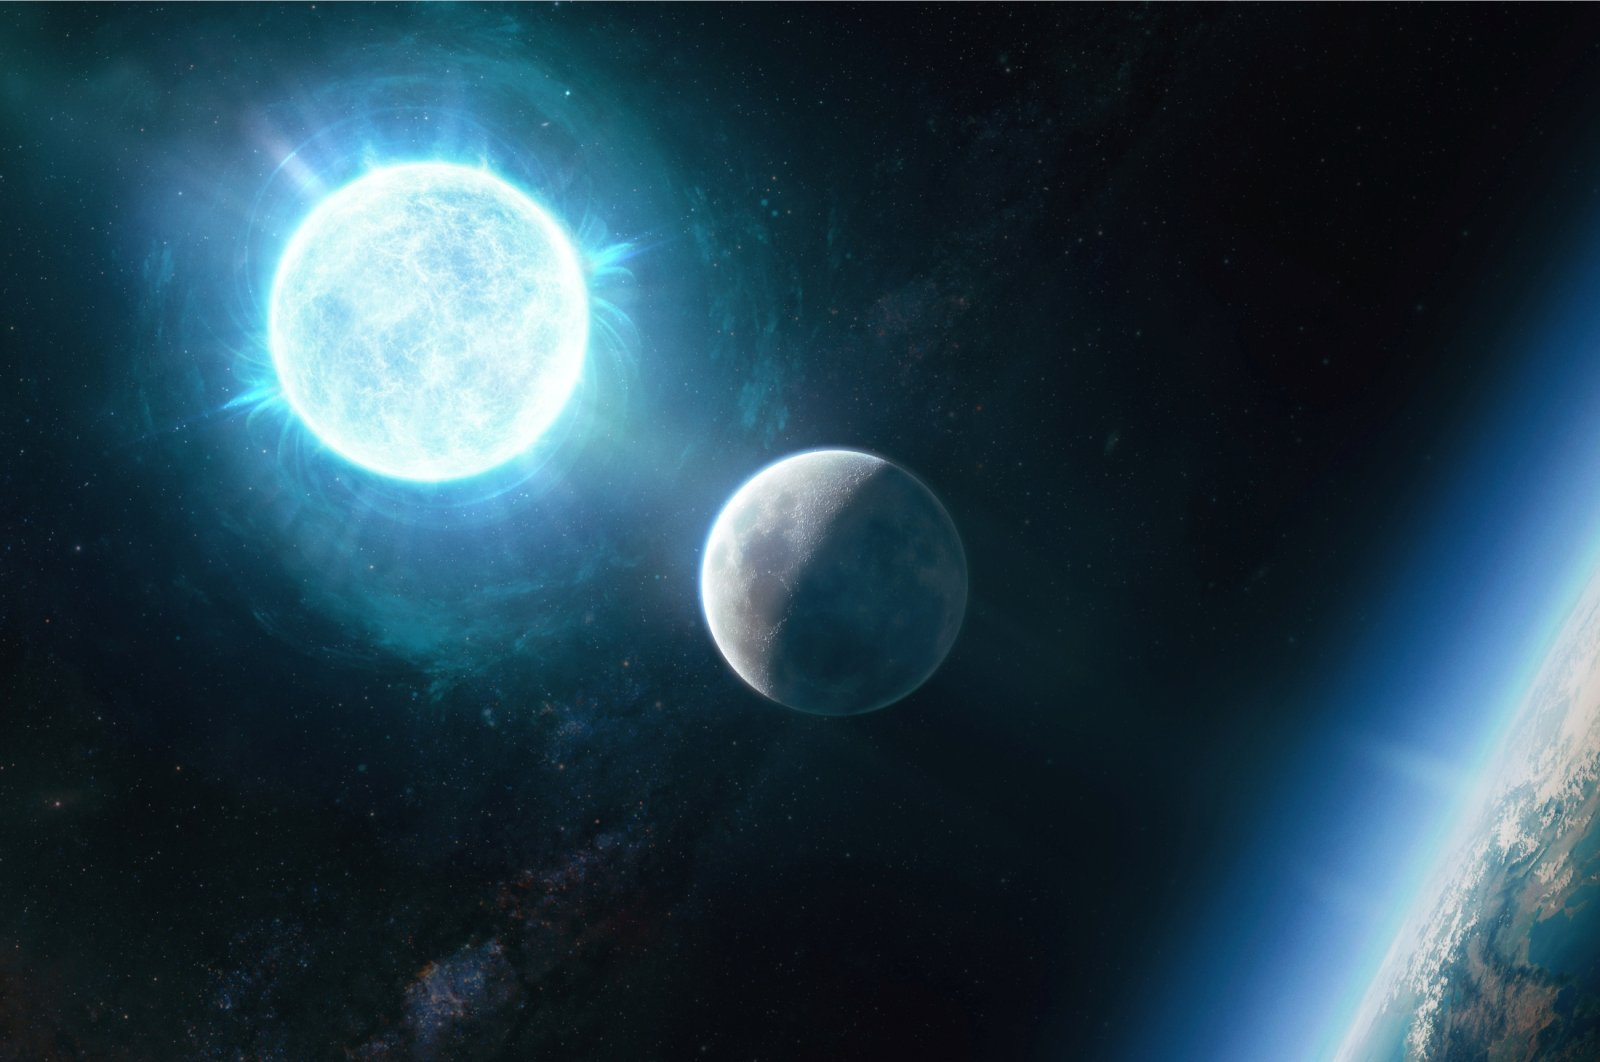 A newfound small white dwarf, called ZTF J1901 1458 and located 130 light-years from Earth, that is slightly larger than the size of the moon in diameter but 1.35 times the mass of our sun, making it both the smallest in size and largest in mass of any known white dwarf is seen in an undated illustration. (Giuseppe Parisi via Reuters)